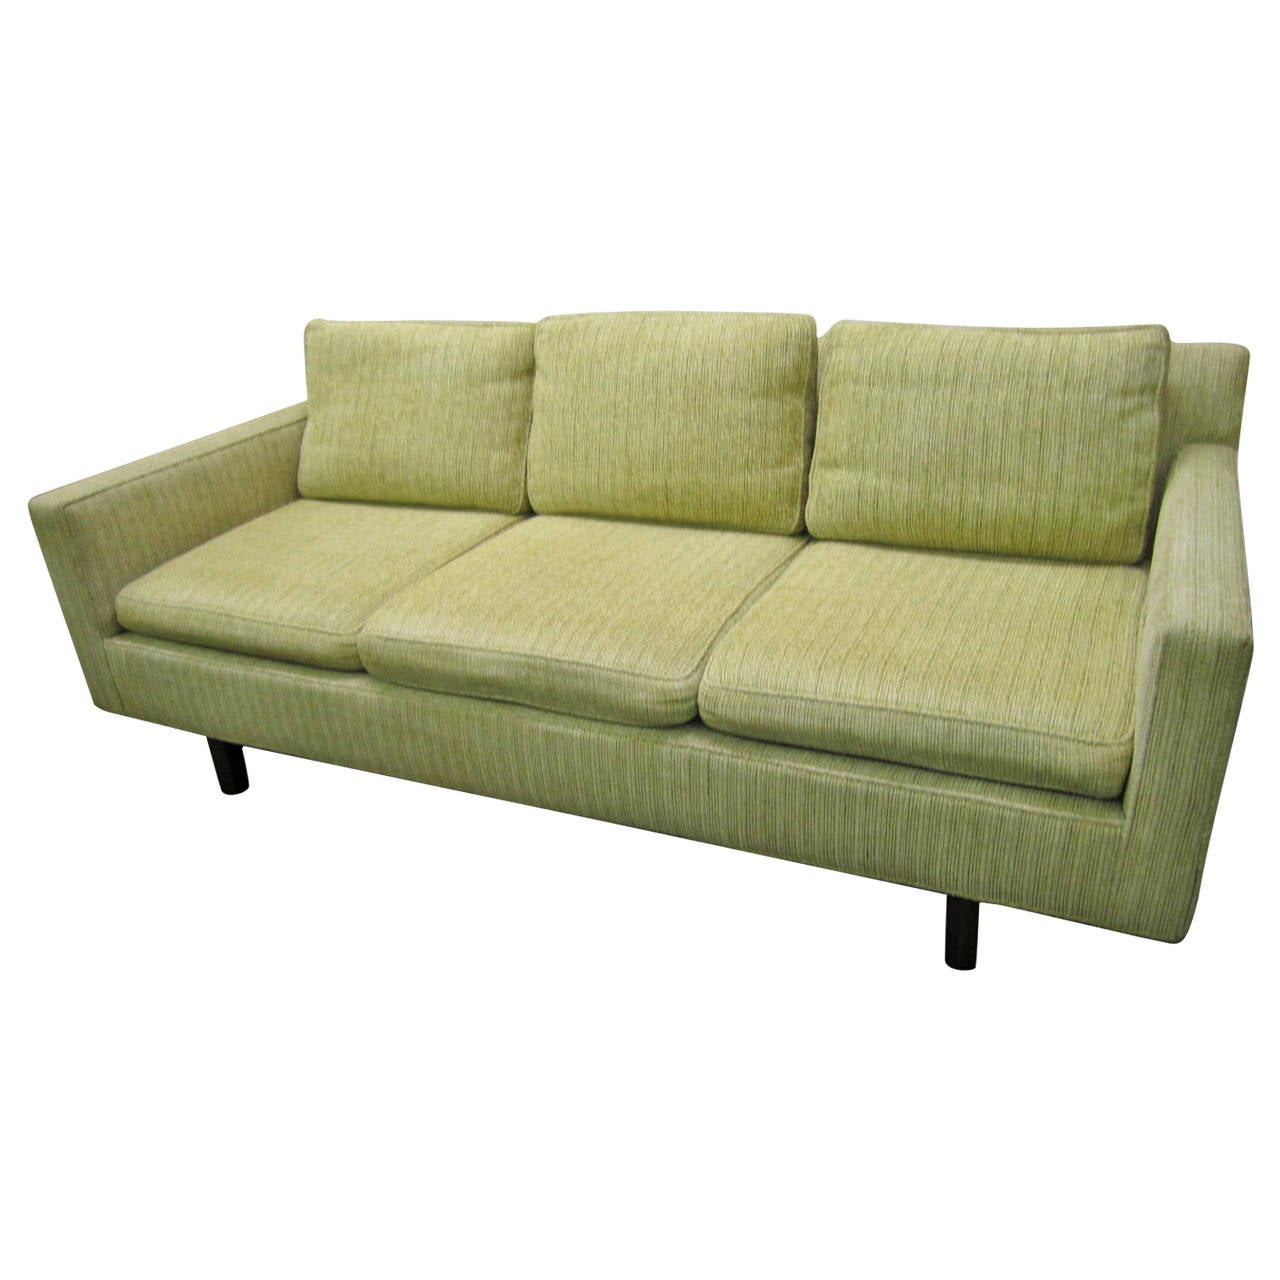 Average cost to reupholster a sofa Reupholster loveseat